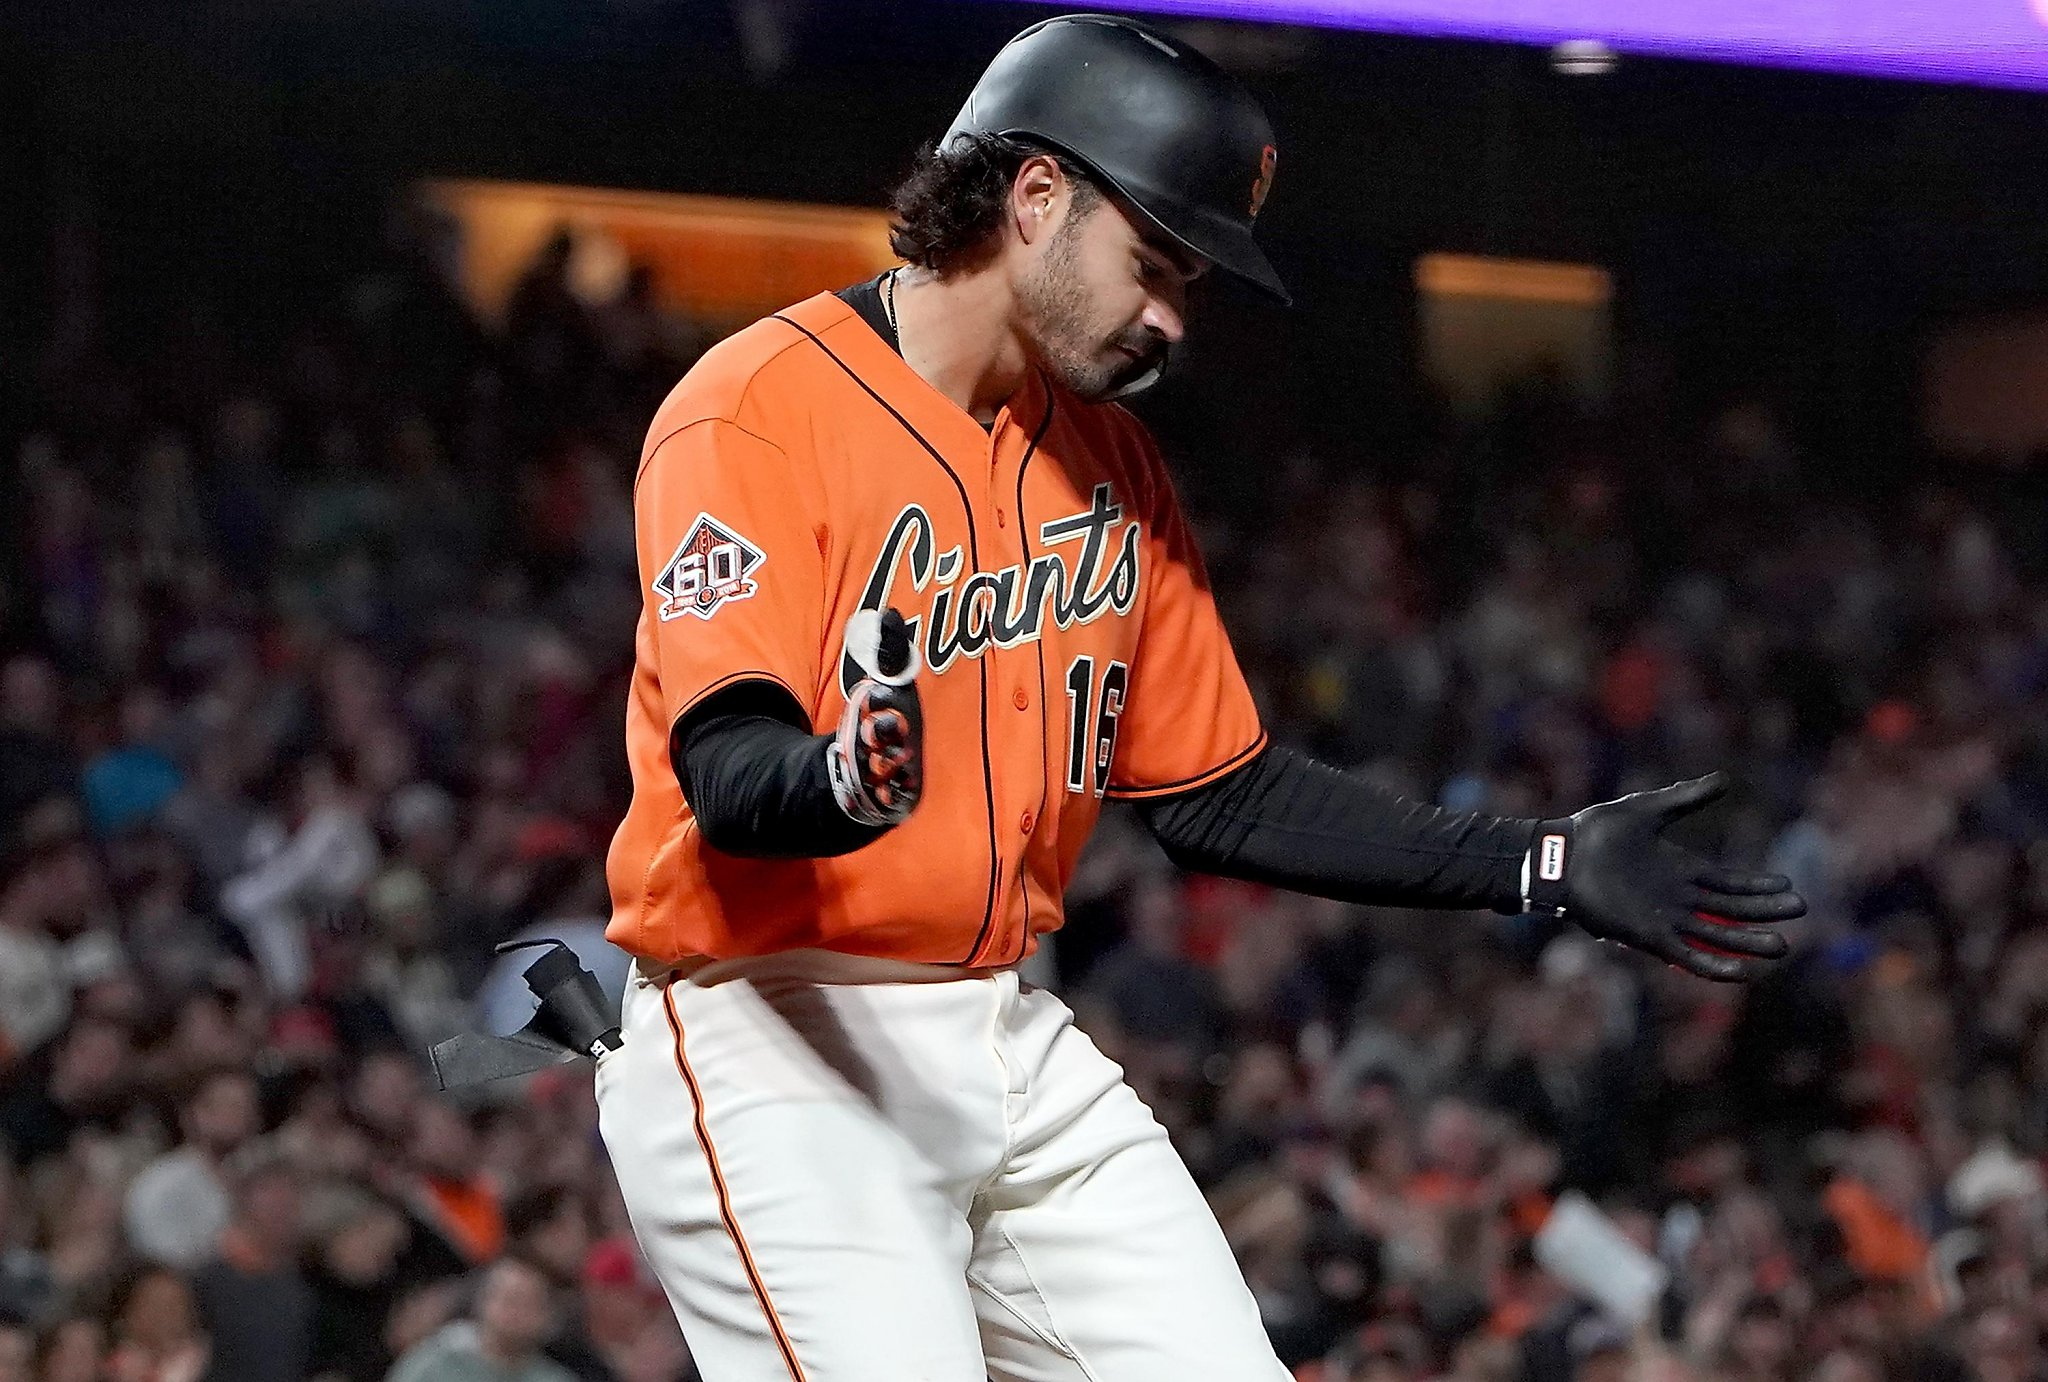 Giants catcher Aramis Garcia out 6-8 months